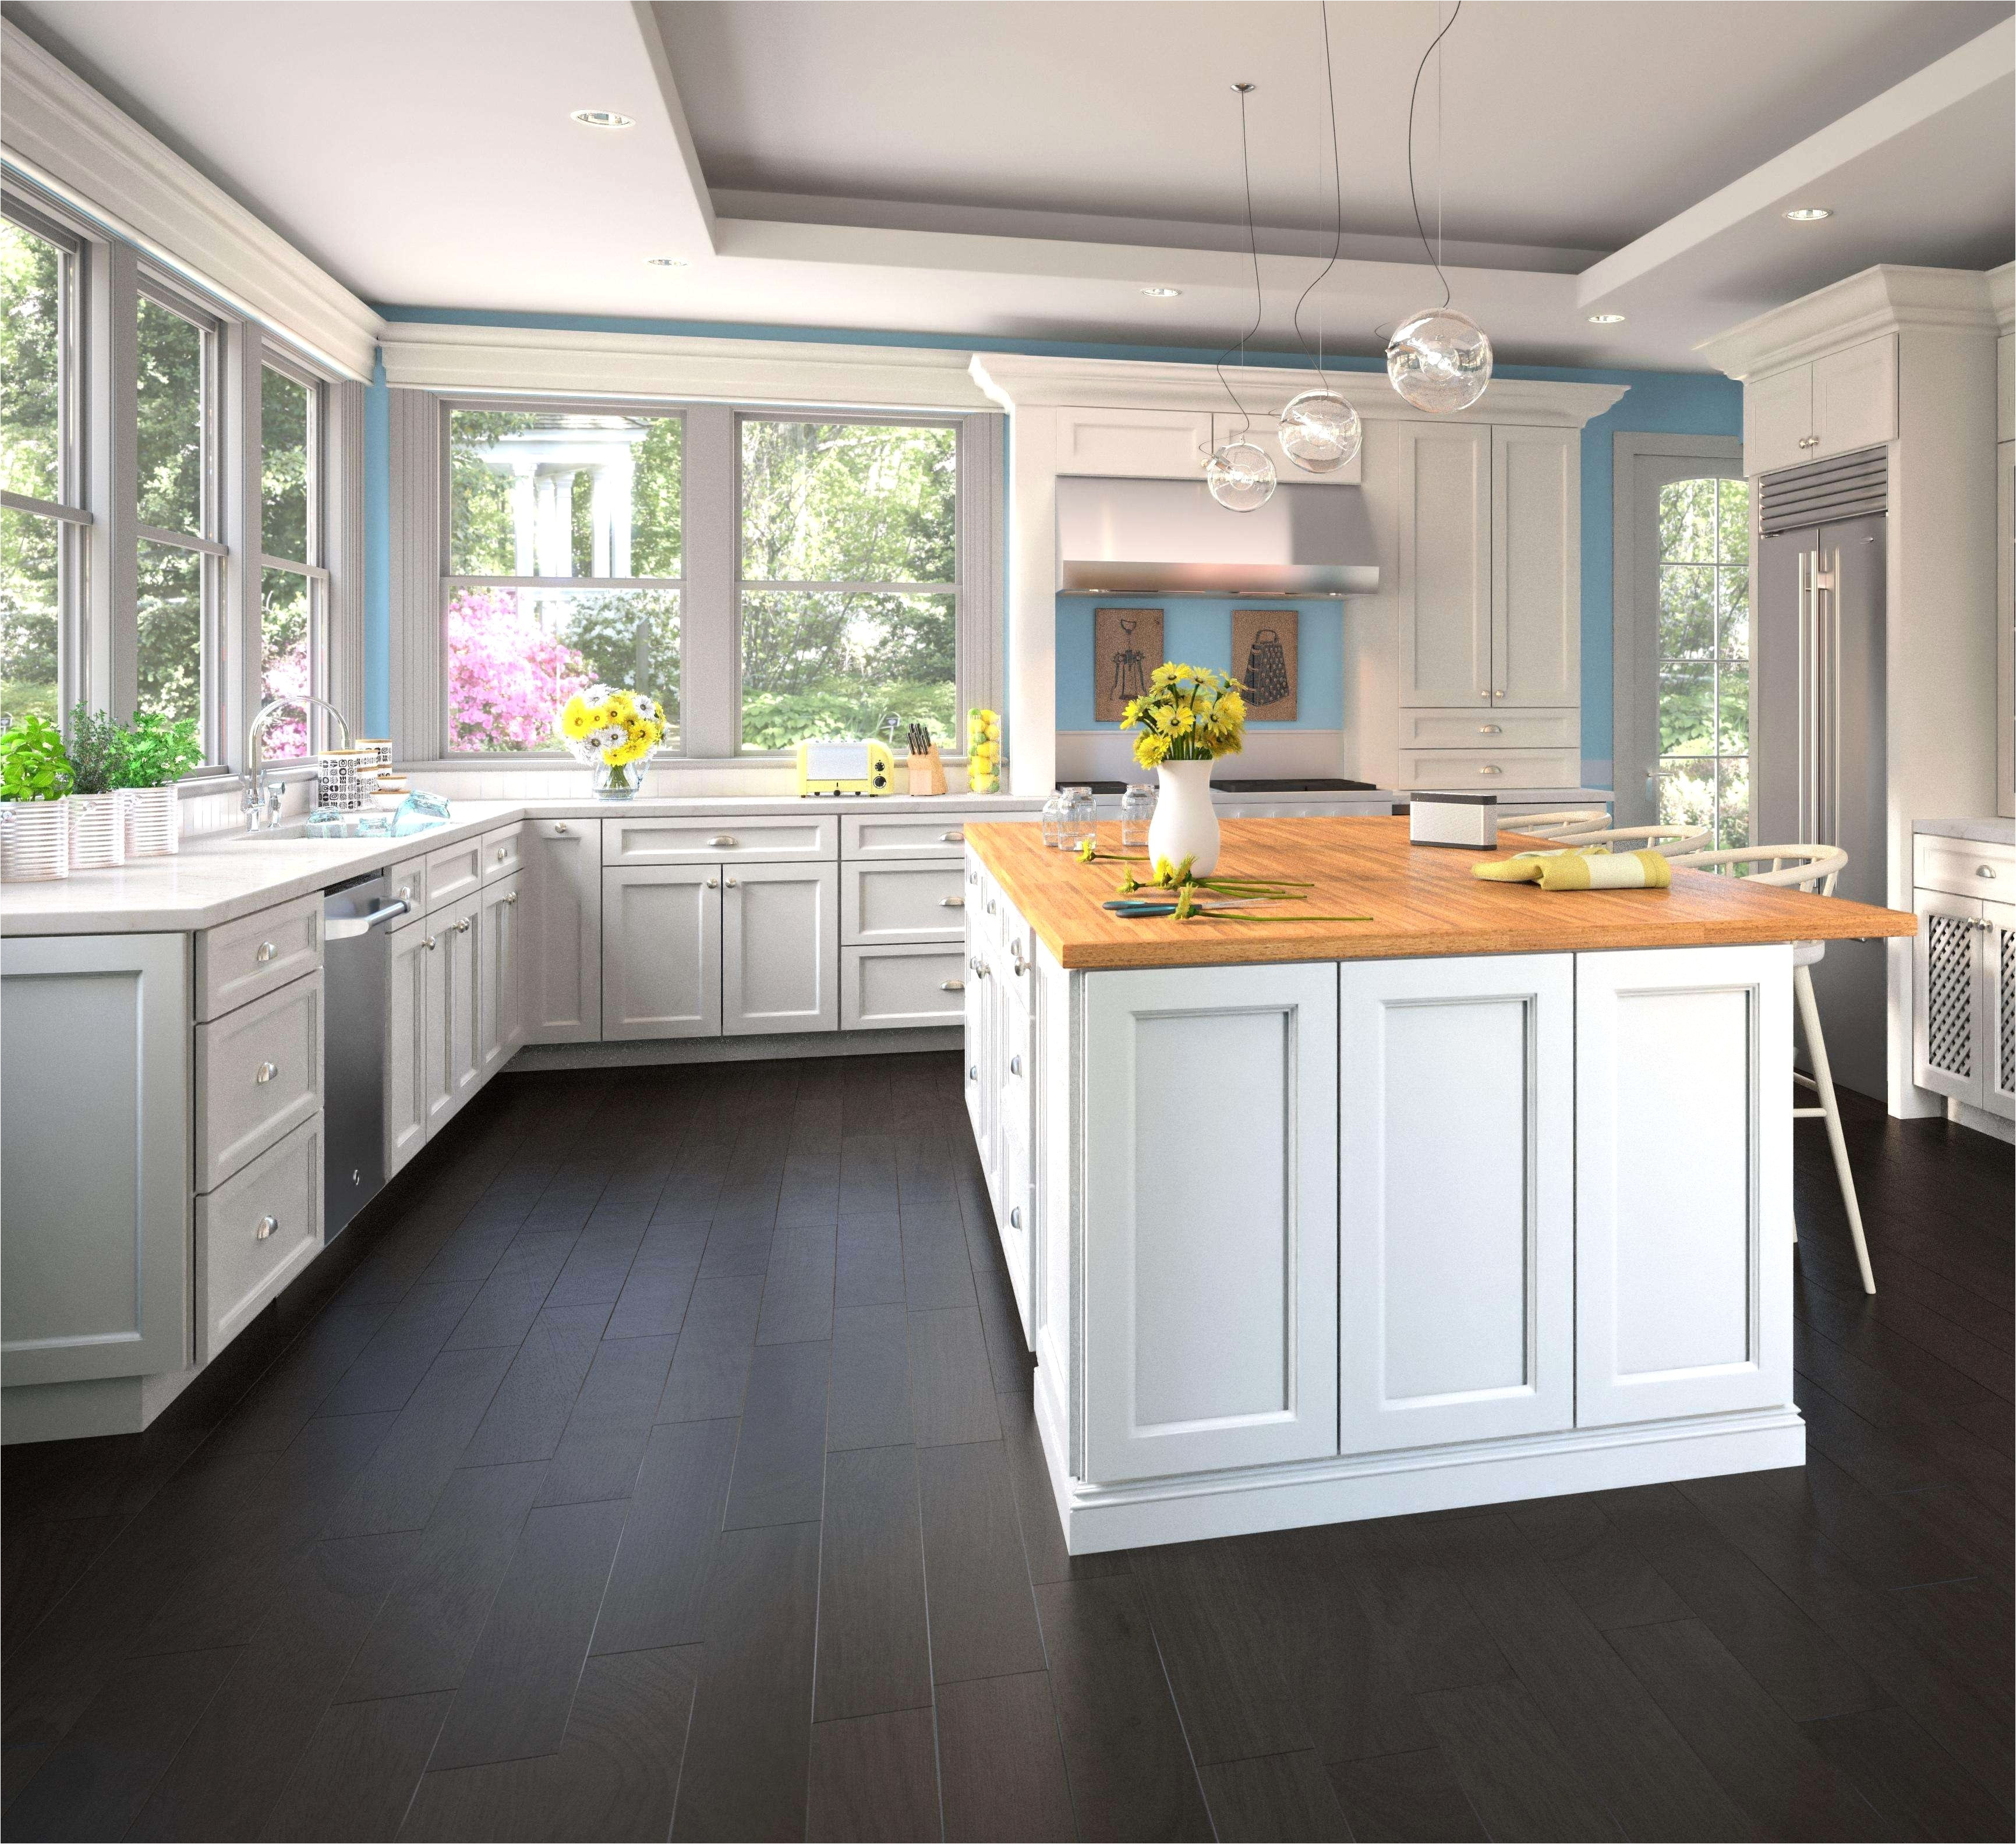 kitchen sink base cabinet home depot best hampton bay hampton from home depot hampton bay kitchen cabinets image source thecoylereport com